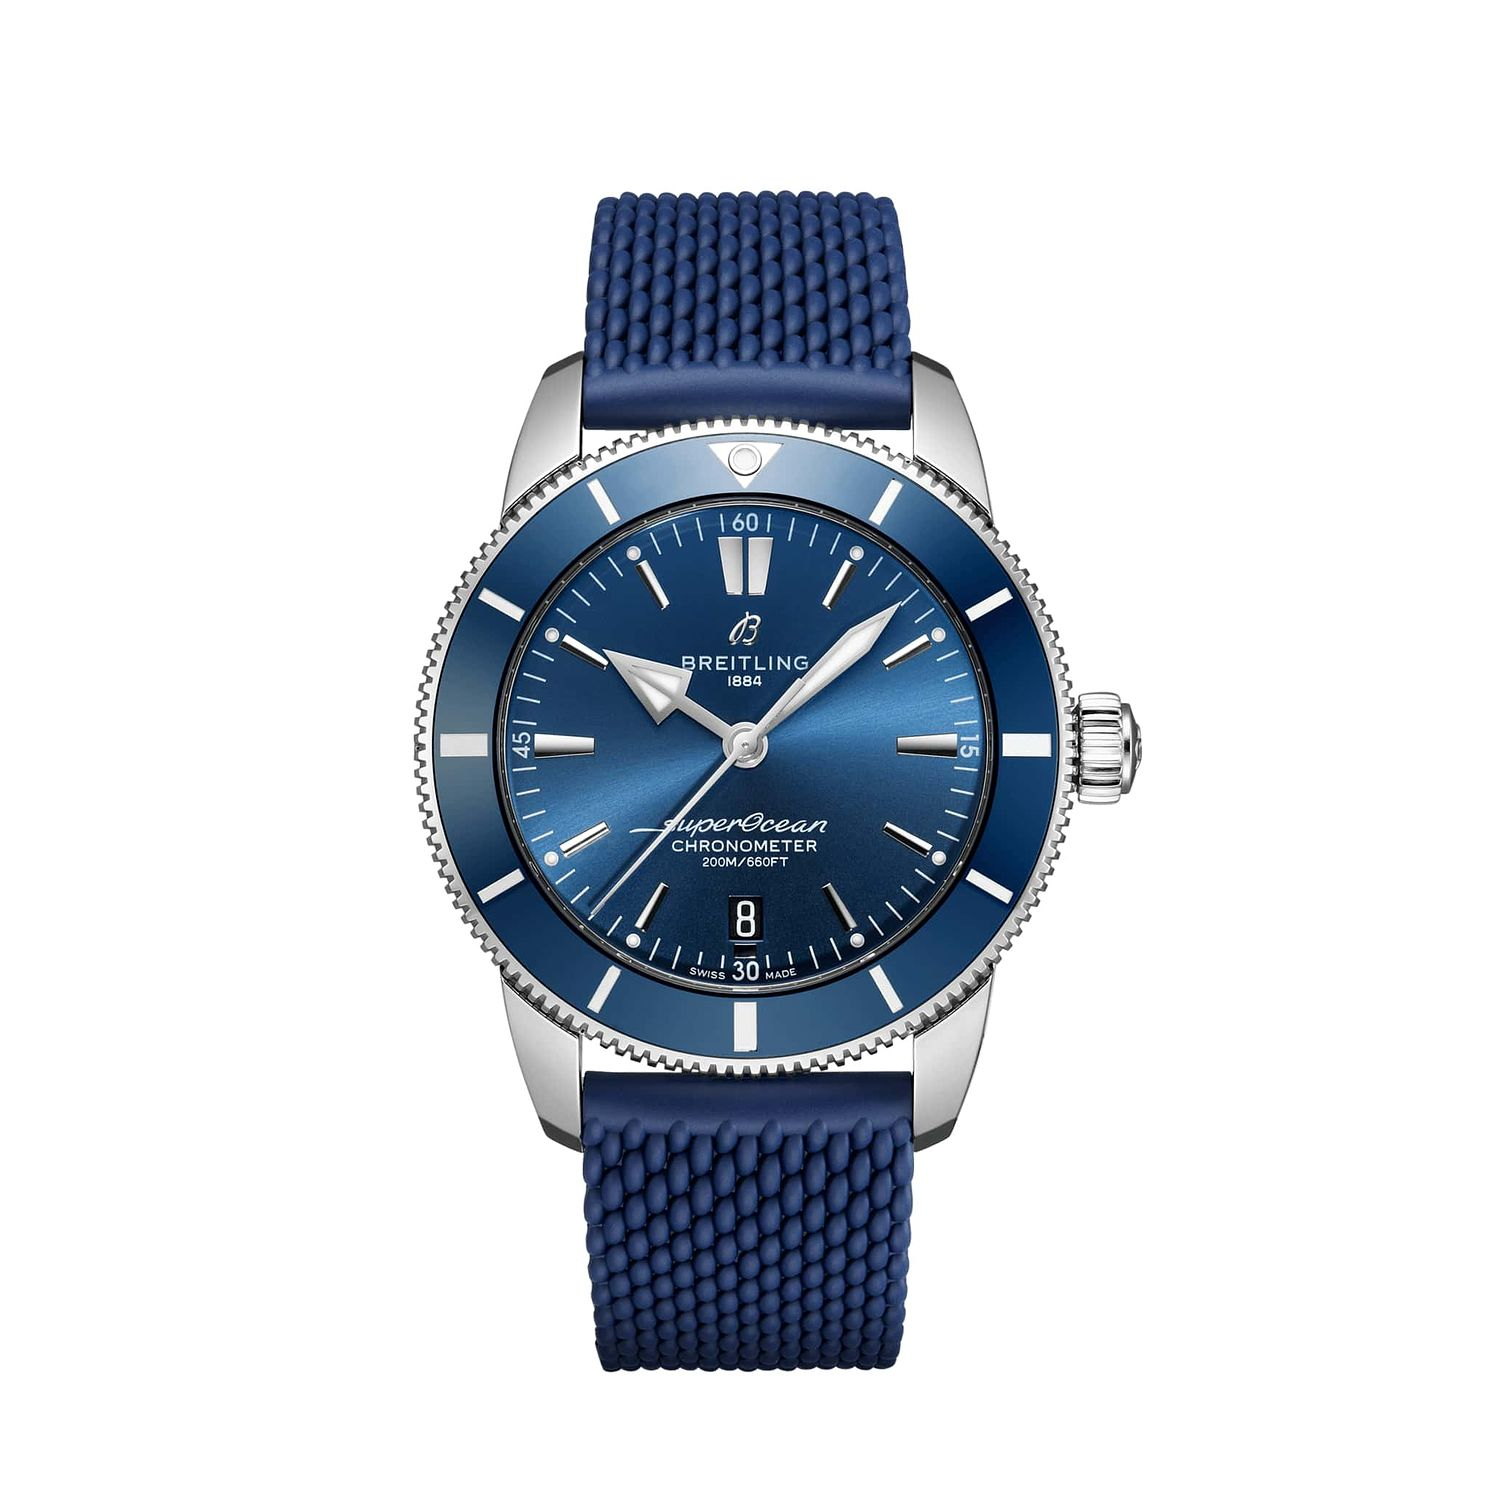 Breitling Superocean Heritage Ii Men's Blue Strap Watch - Product number 1128736